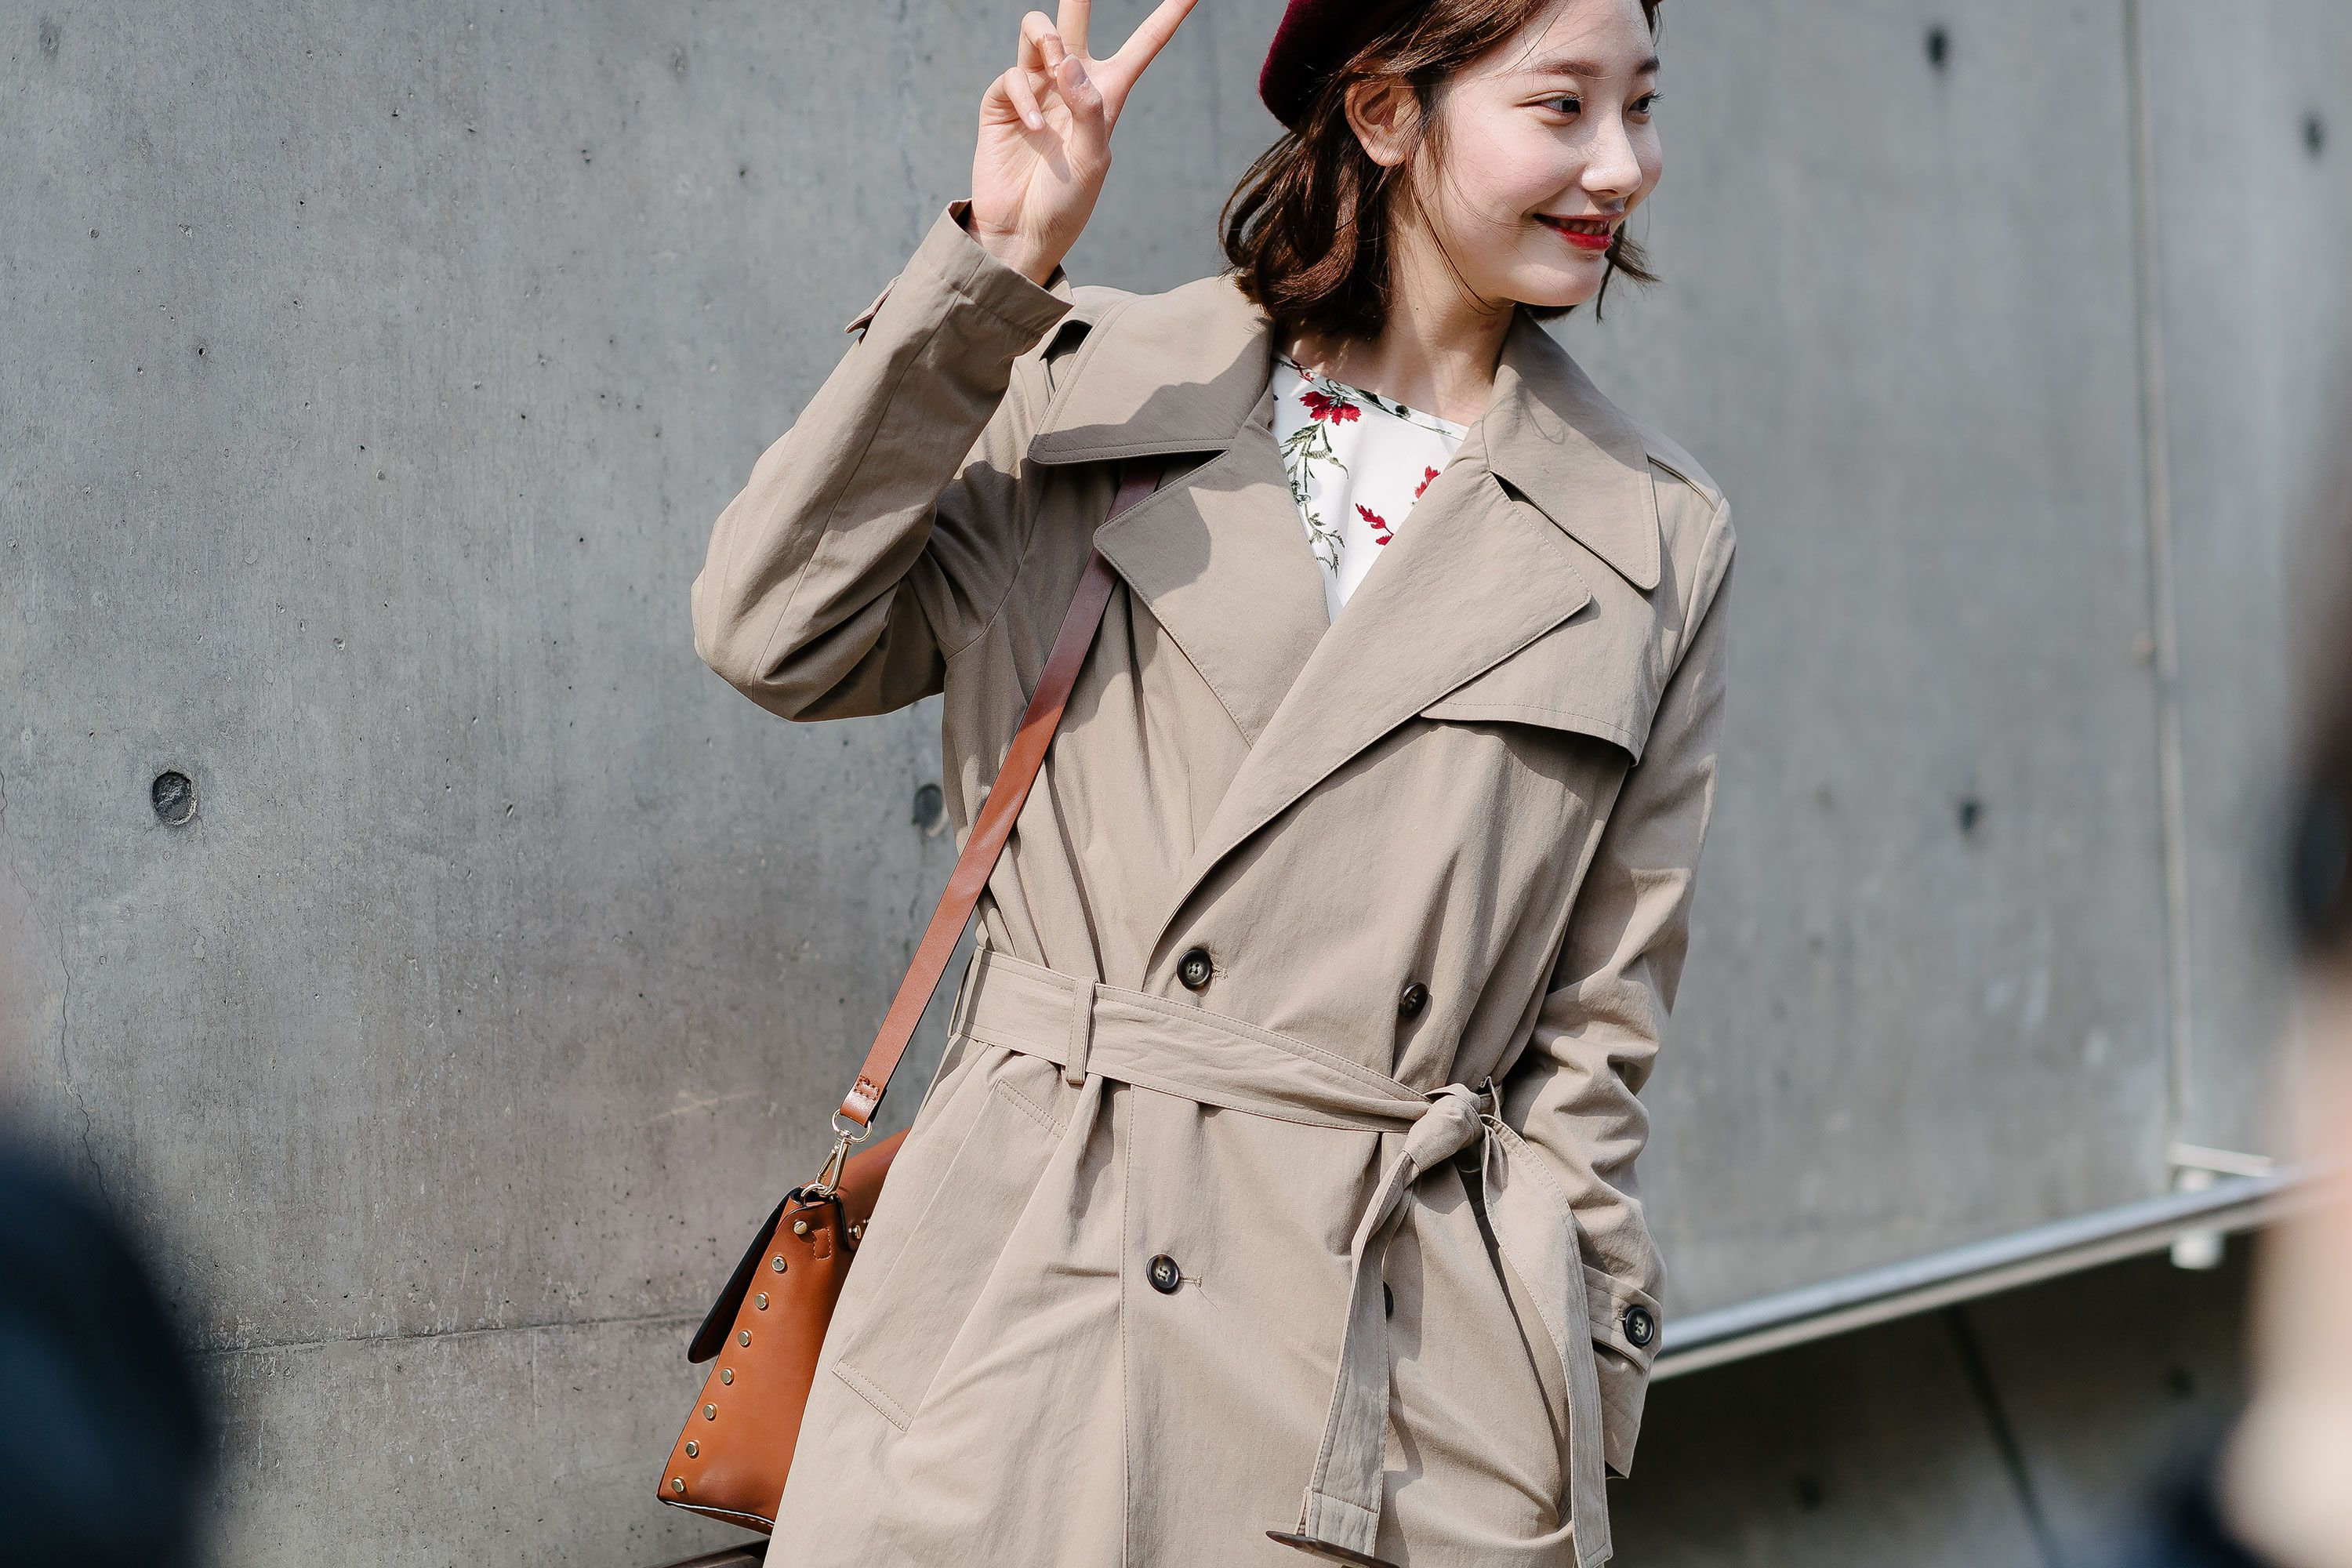 Serious street style inspiration from Seoul.